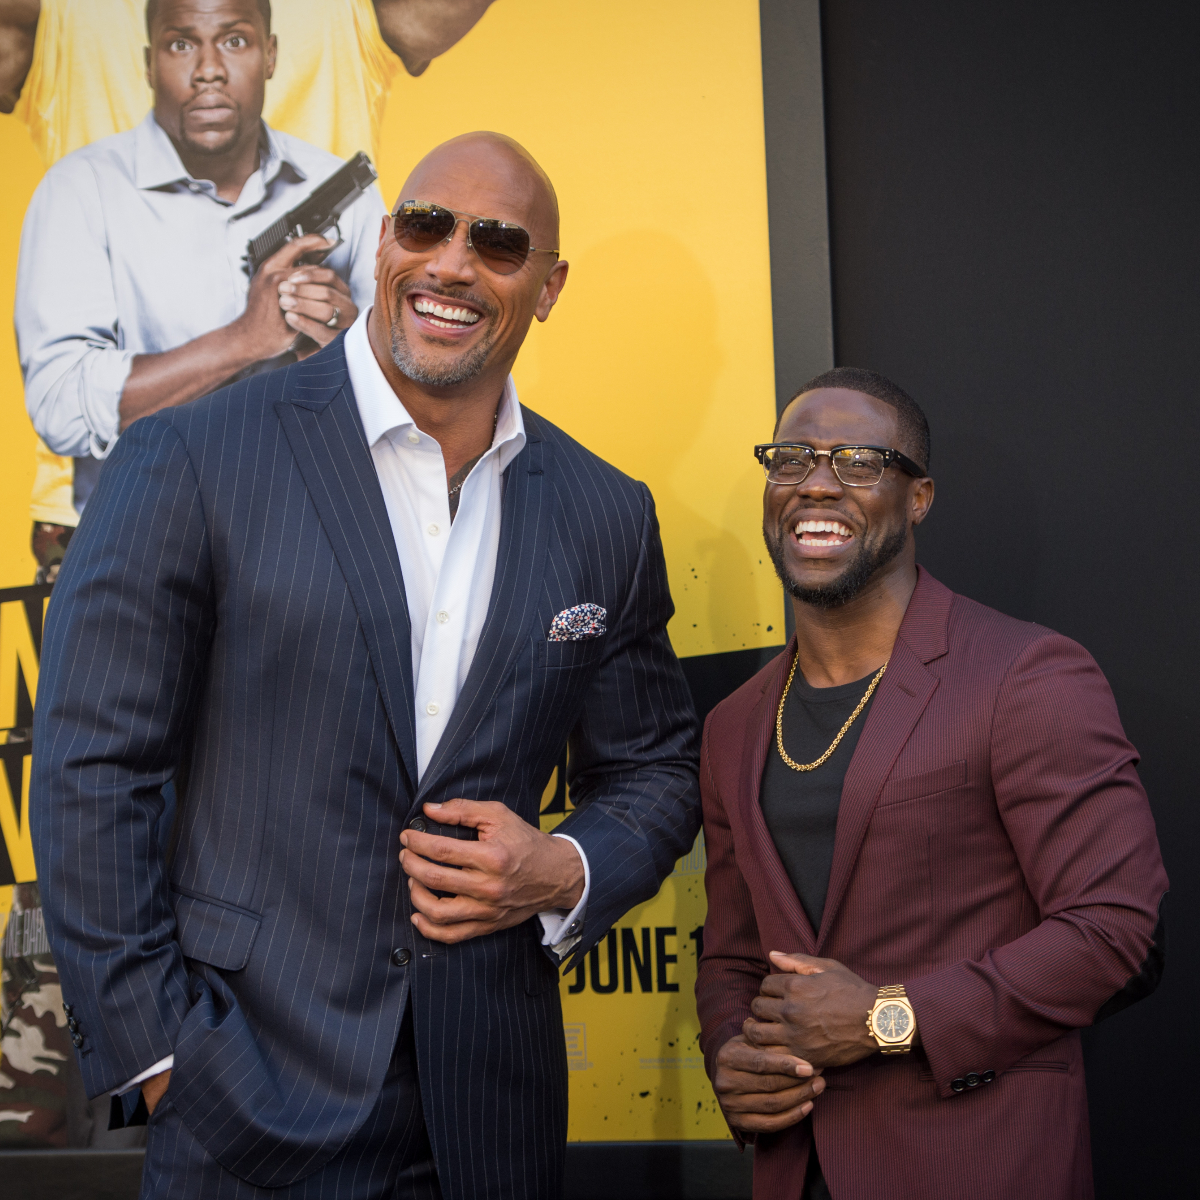 VIDEO: Dwayne Johnson carries The Rock doll for injured Kevin Hart: I always gotta take care of my son